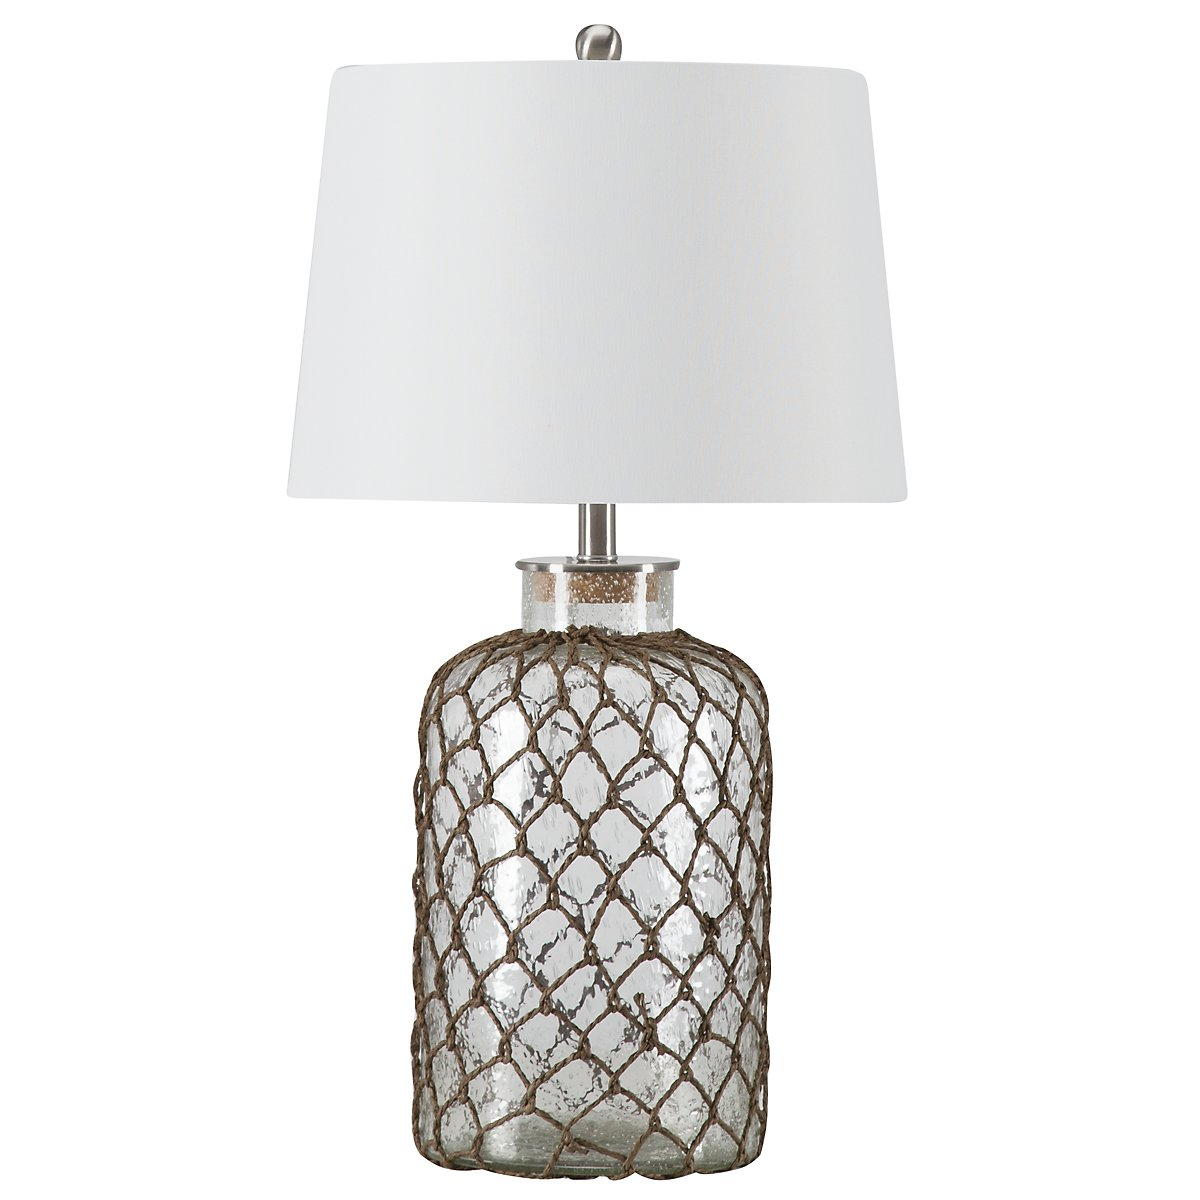 City Furniture Seeded Clear Glass Table Lamp